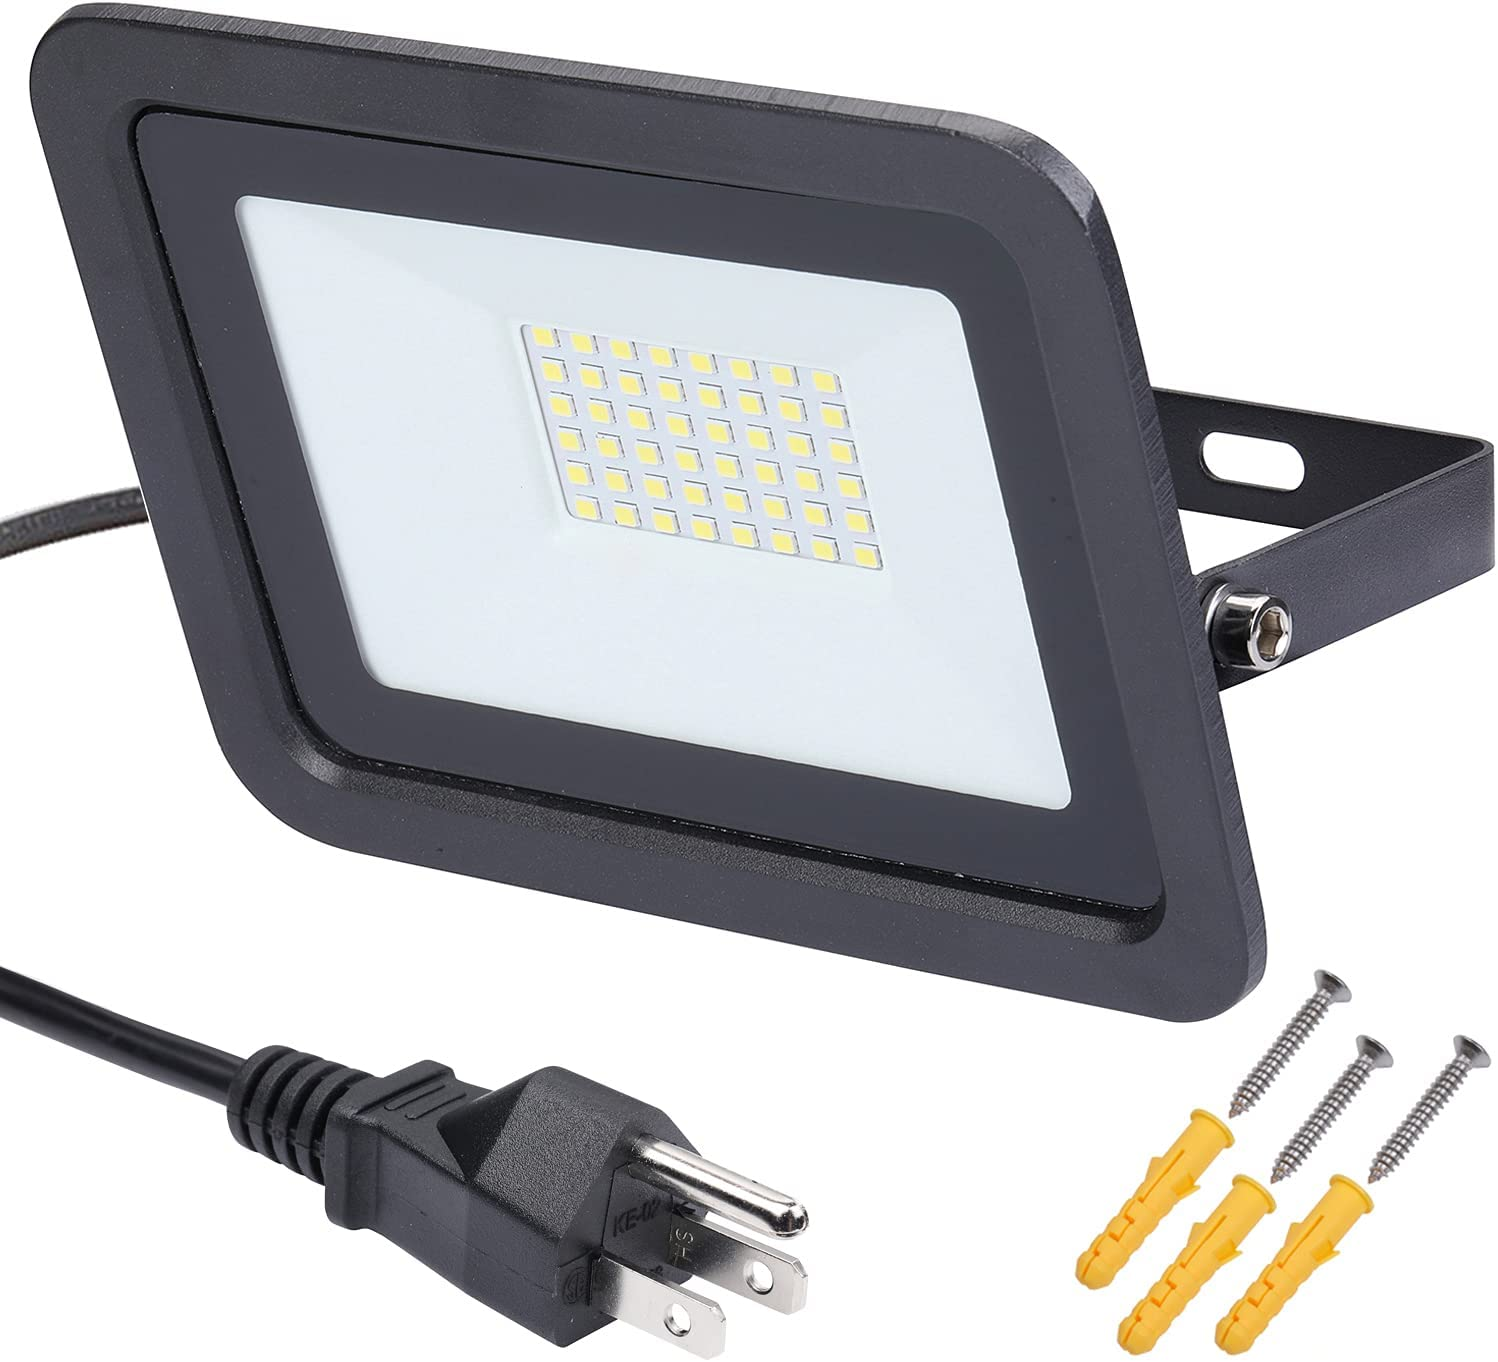 Ultra-Thin Max 77% OFF 50W IP68 Waterproof Outdoor LED Lighting Max 56% OFF Flood P with